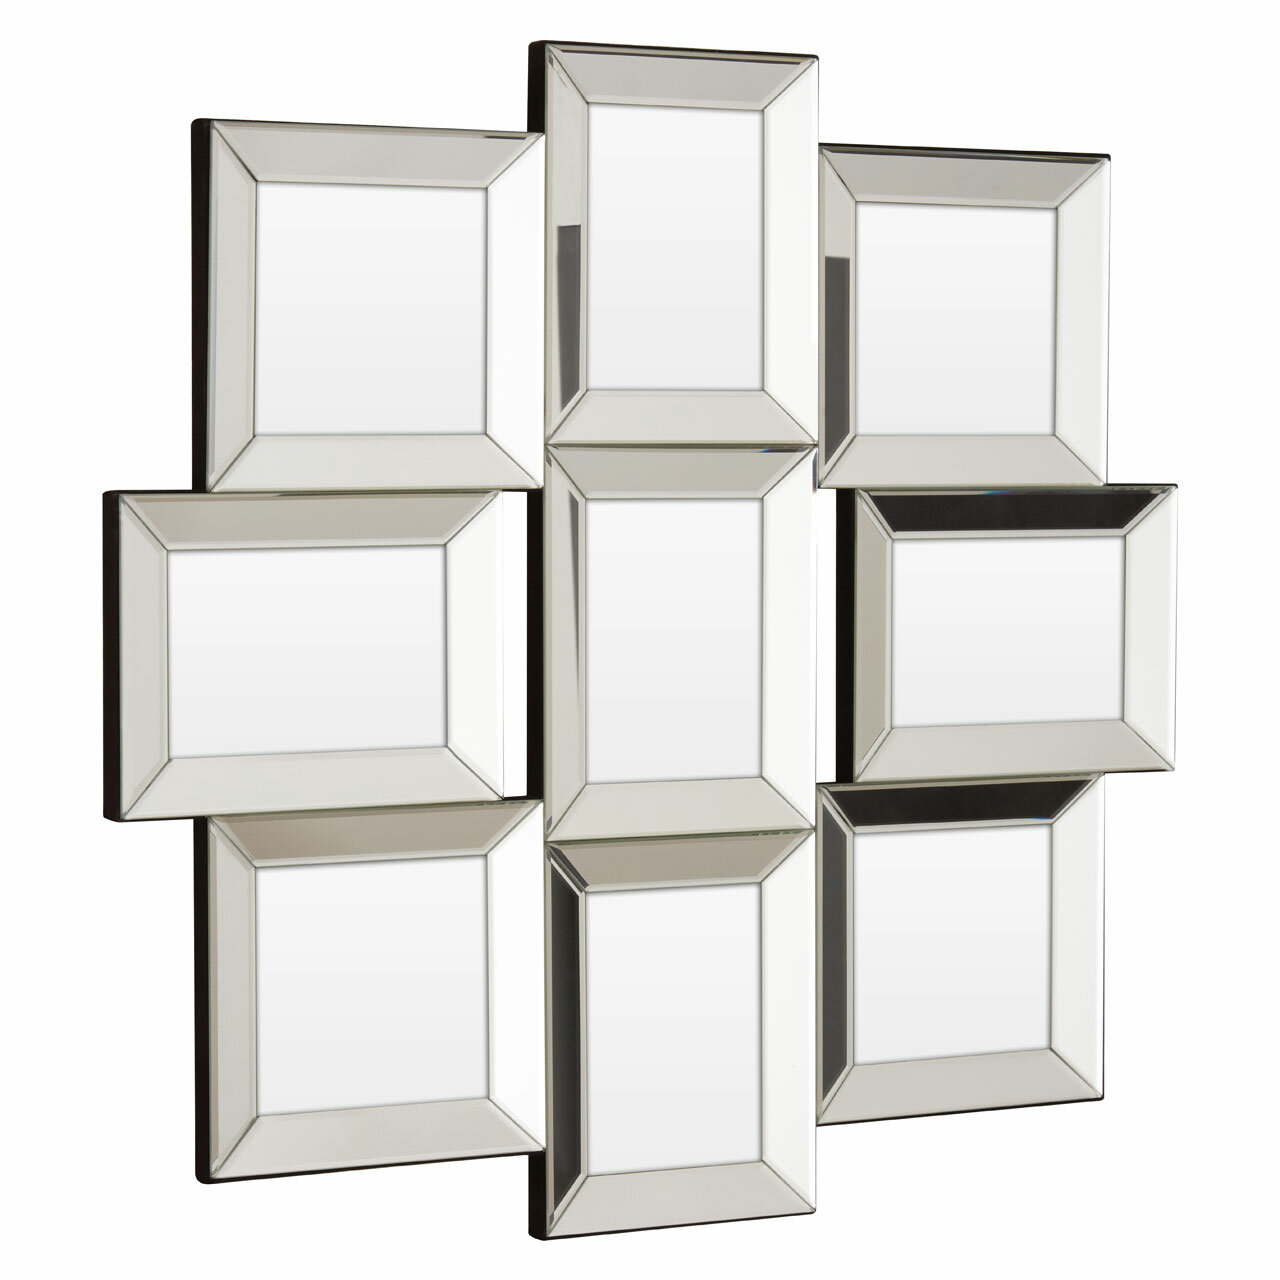 Fairmont Park Morion Collage Mirrored 9 Photo Picture Frame ...